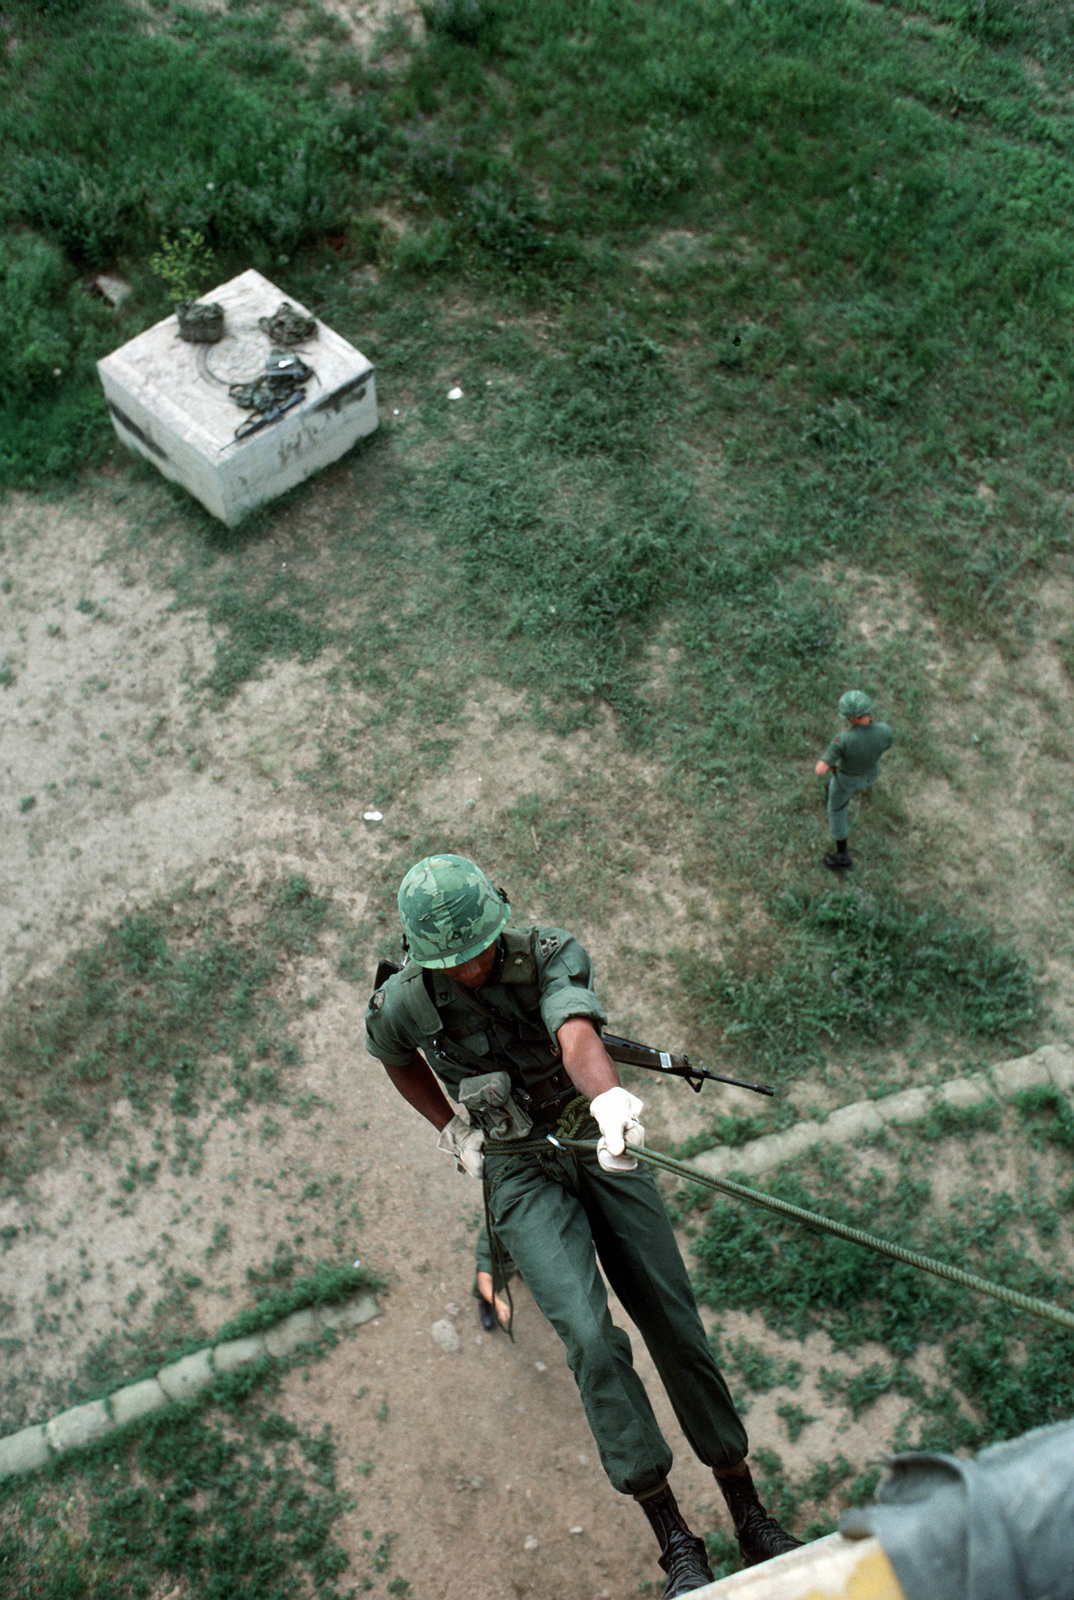 A US Army soldier practices rappelling from a tower during a field training exercise